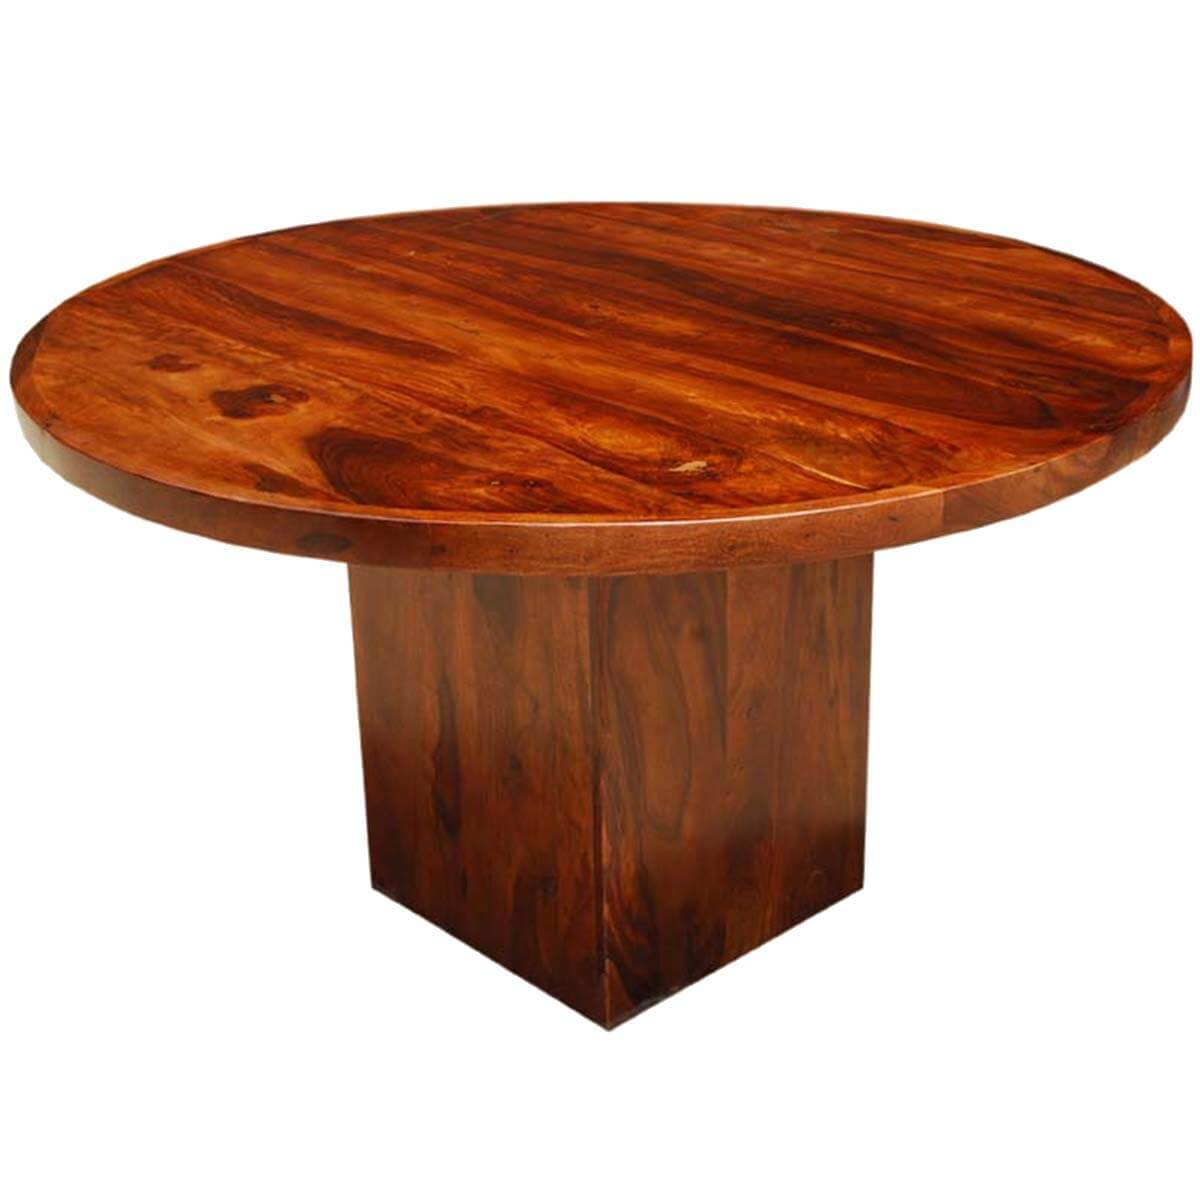 Solid wood rustic round dining table w square pedestal for Hardwood dining table